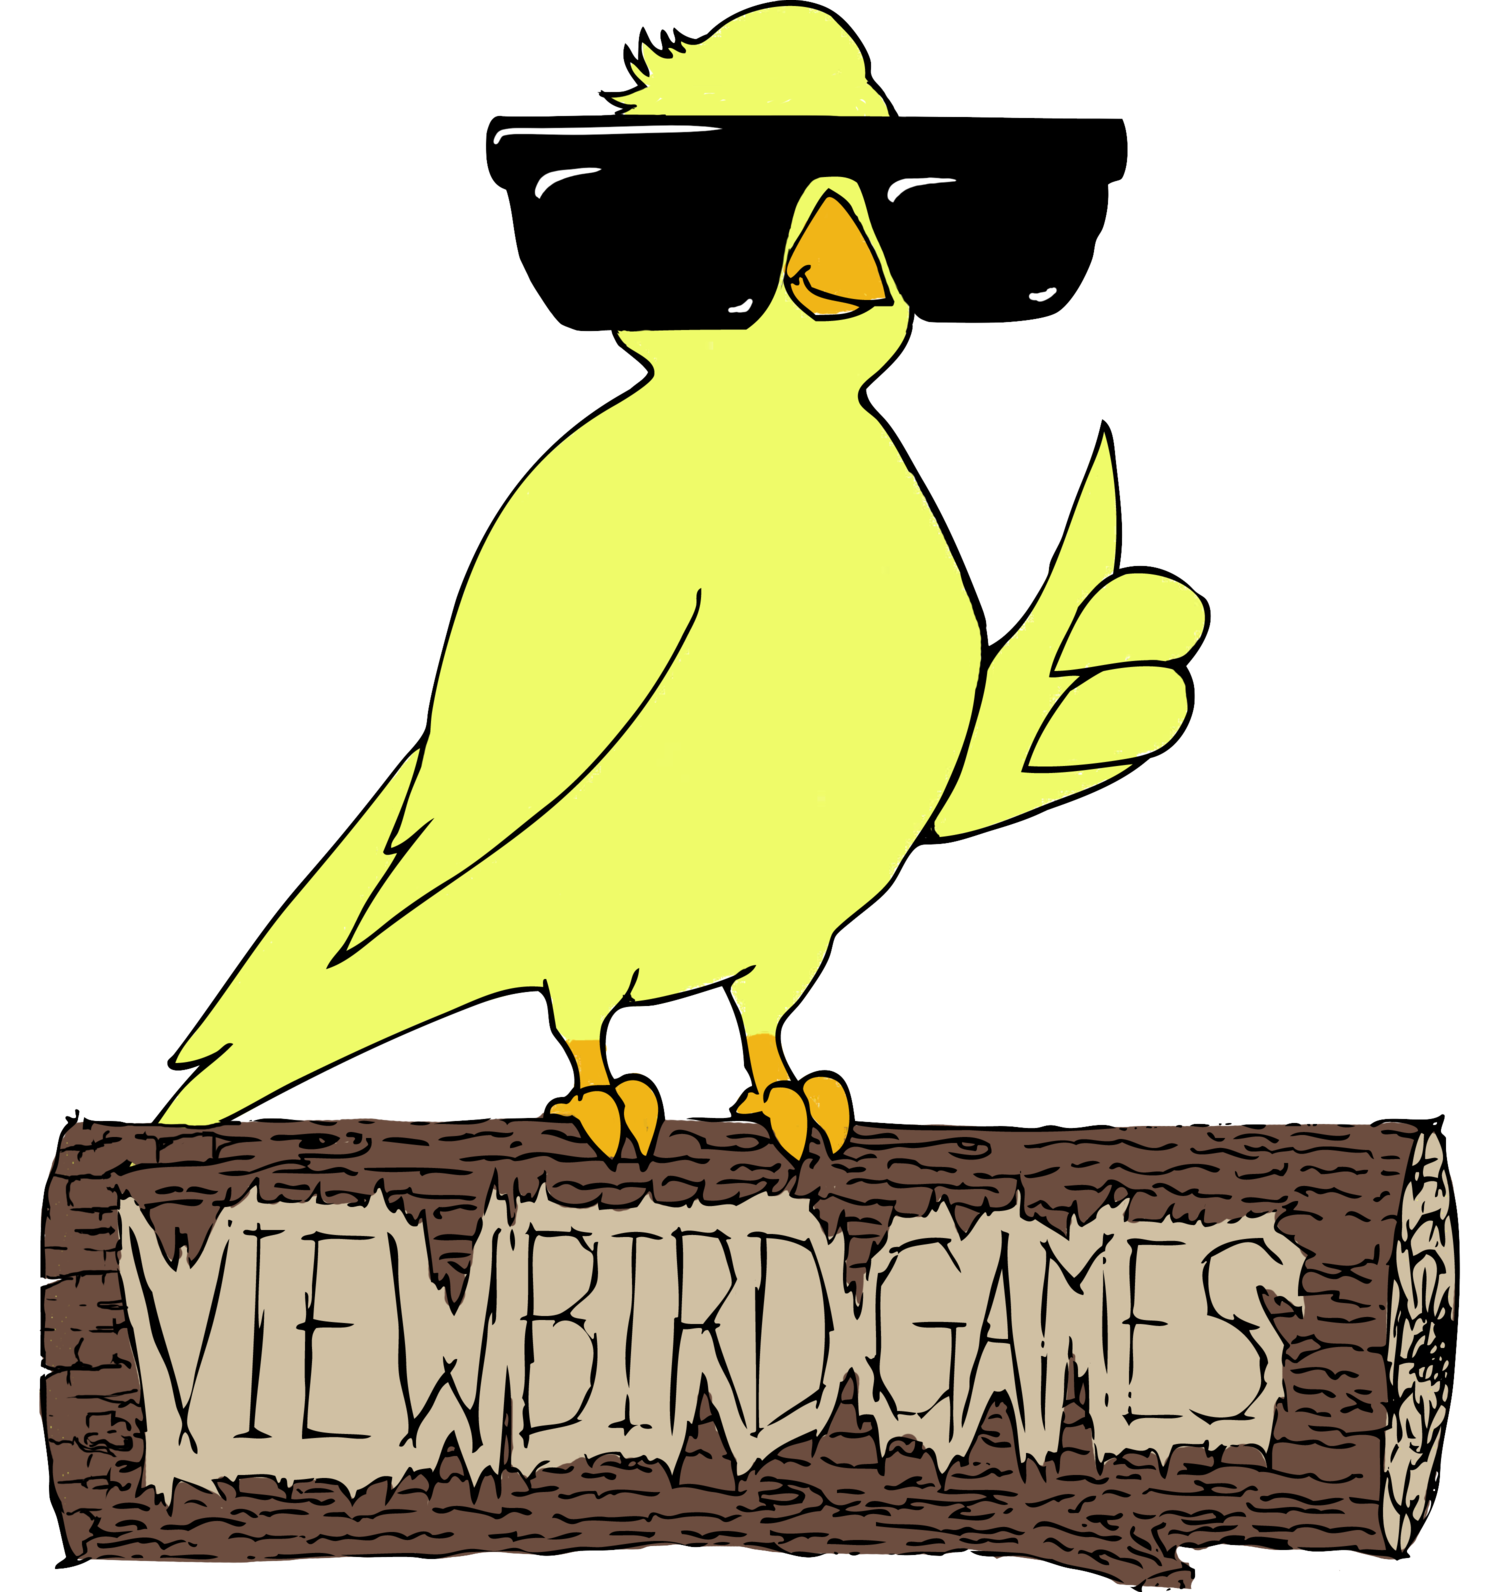 News viewbird games birdev. Nest clipart bird scene